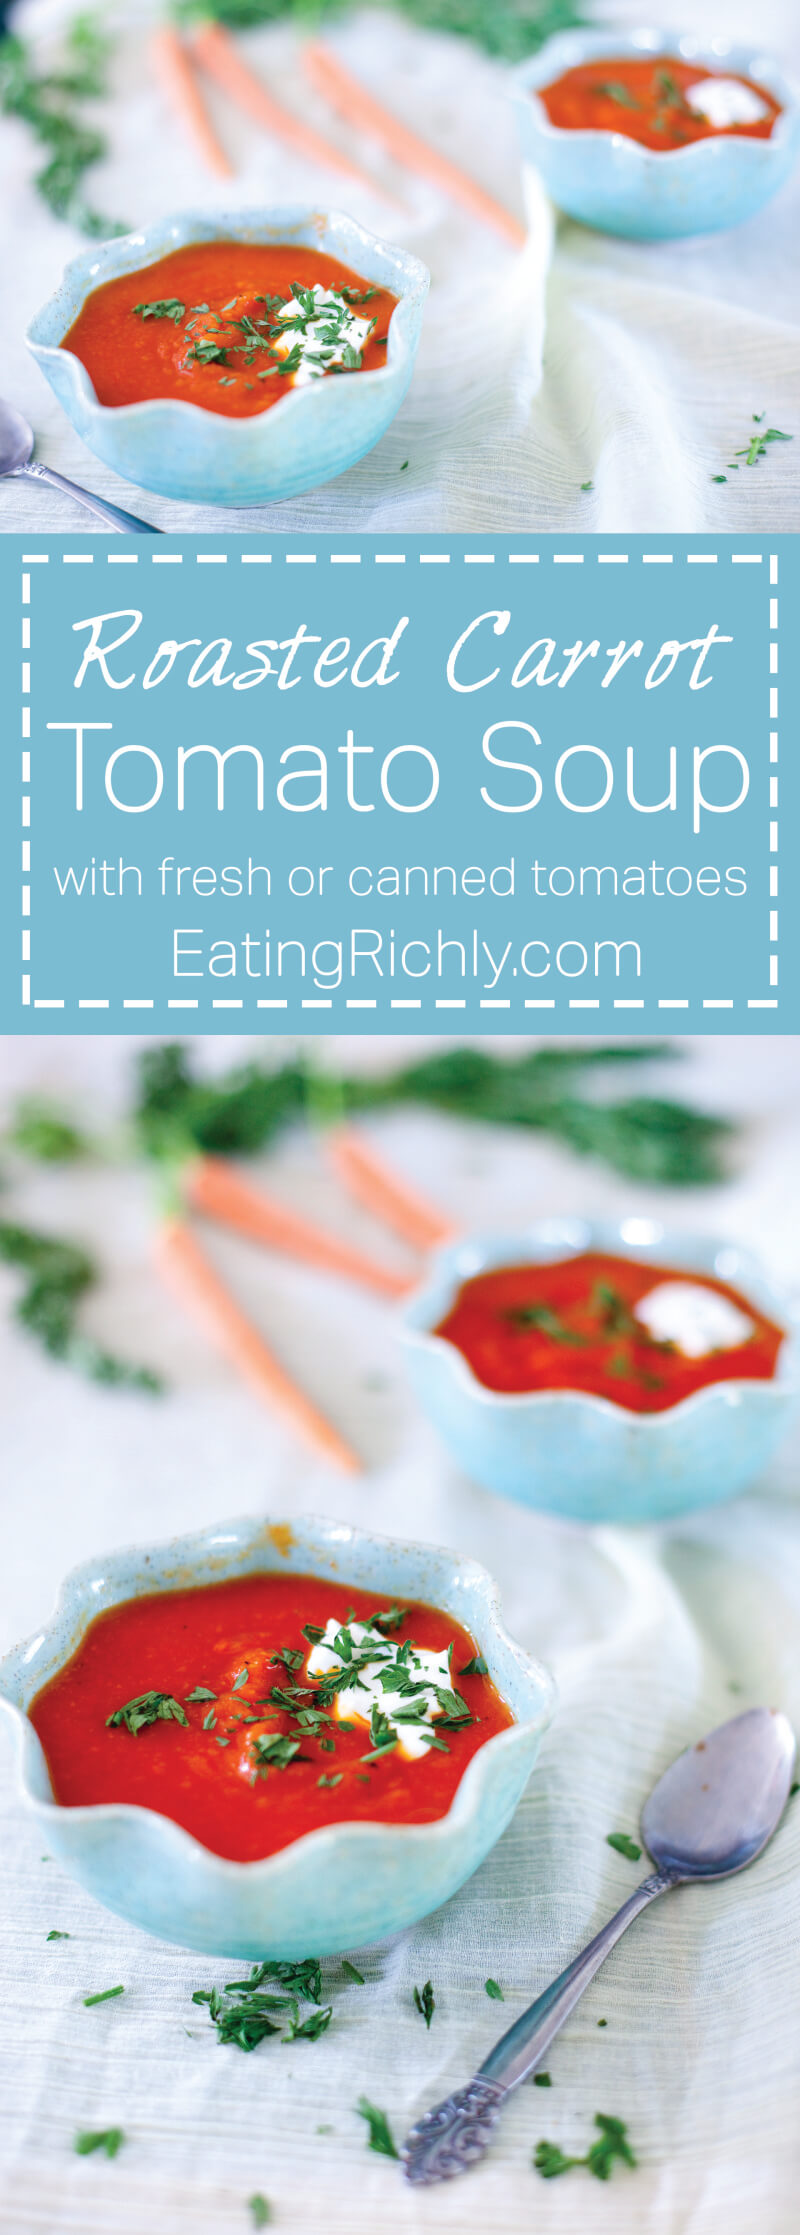 This roasted carrot tomato soup recipe can be made year round with fresh or canned tomatoes. From EatingRichly.com